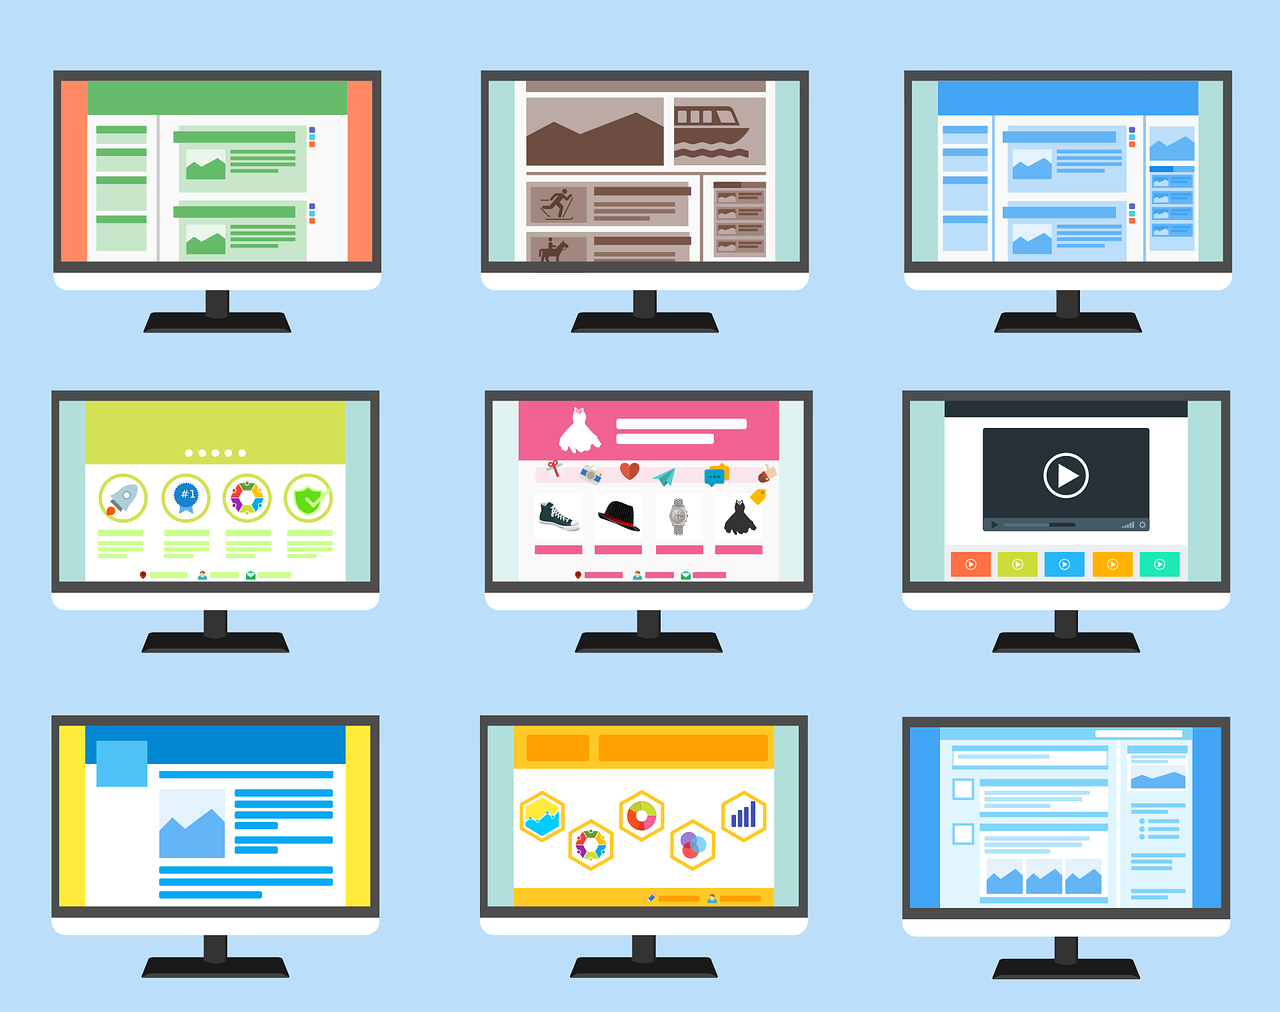 5 Aspects of Web Design Crucial For Business